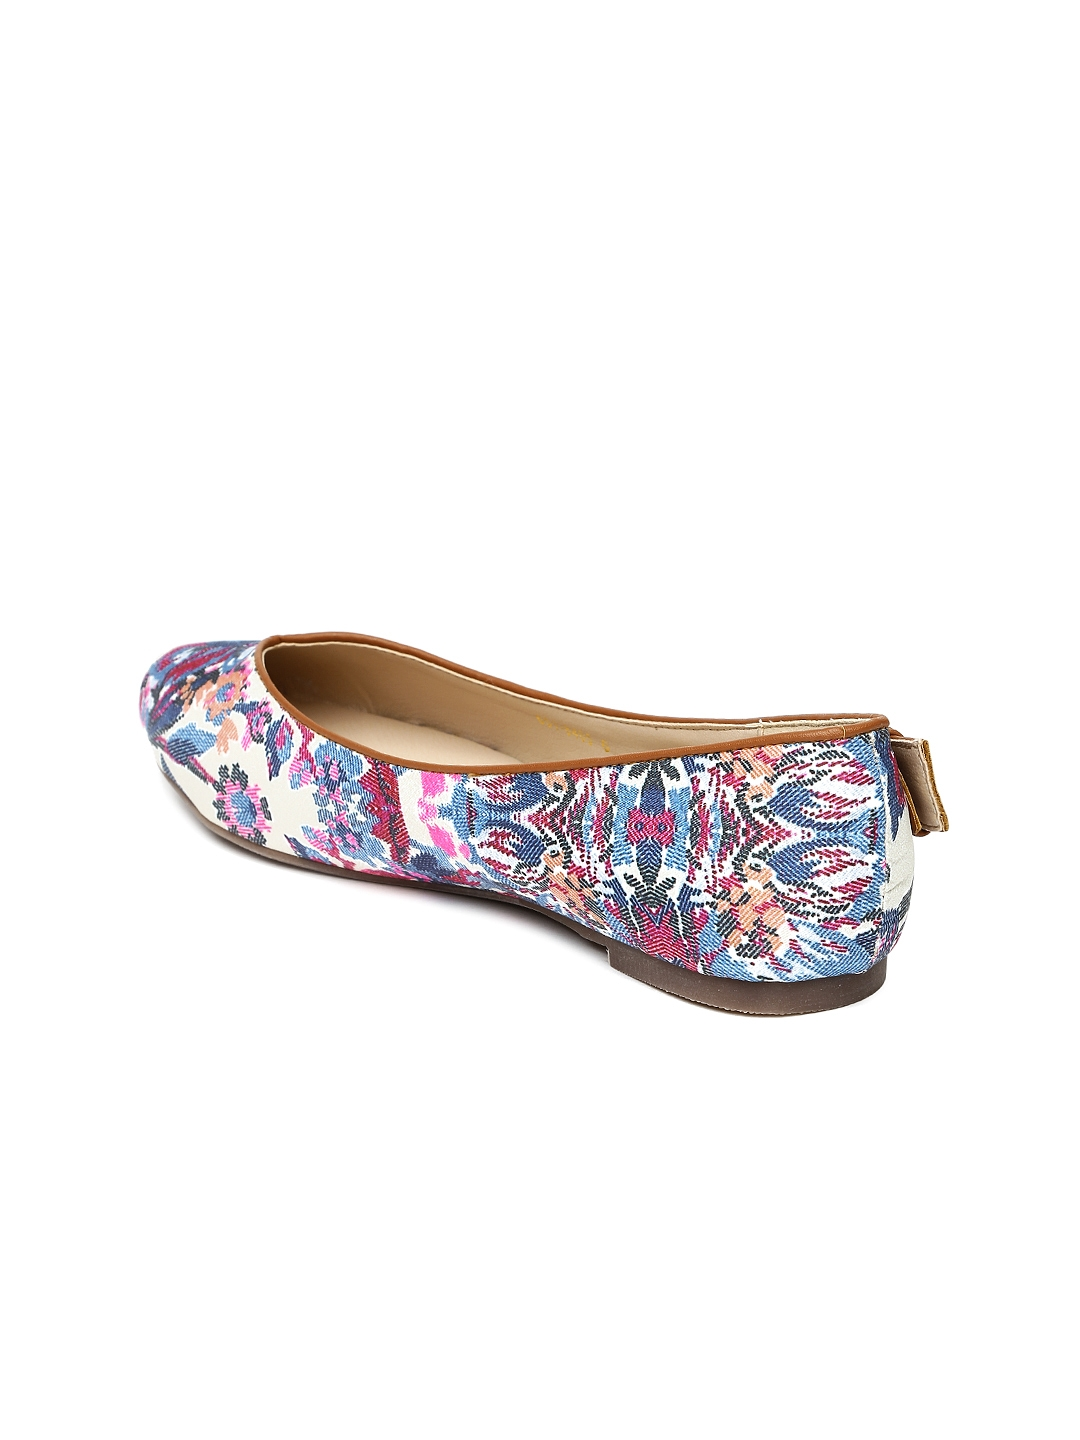 179f98f93 Buy Marie Claire Women Beige Floral Print Flat Shoes - Flats for ...